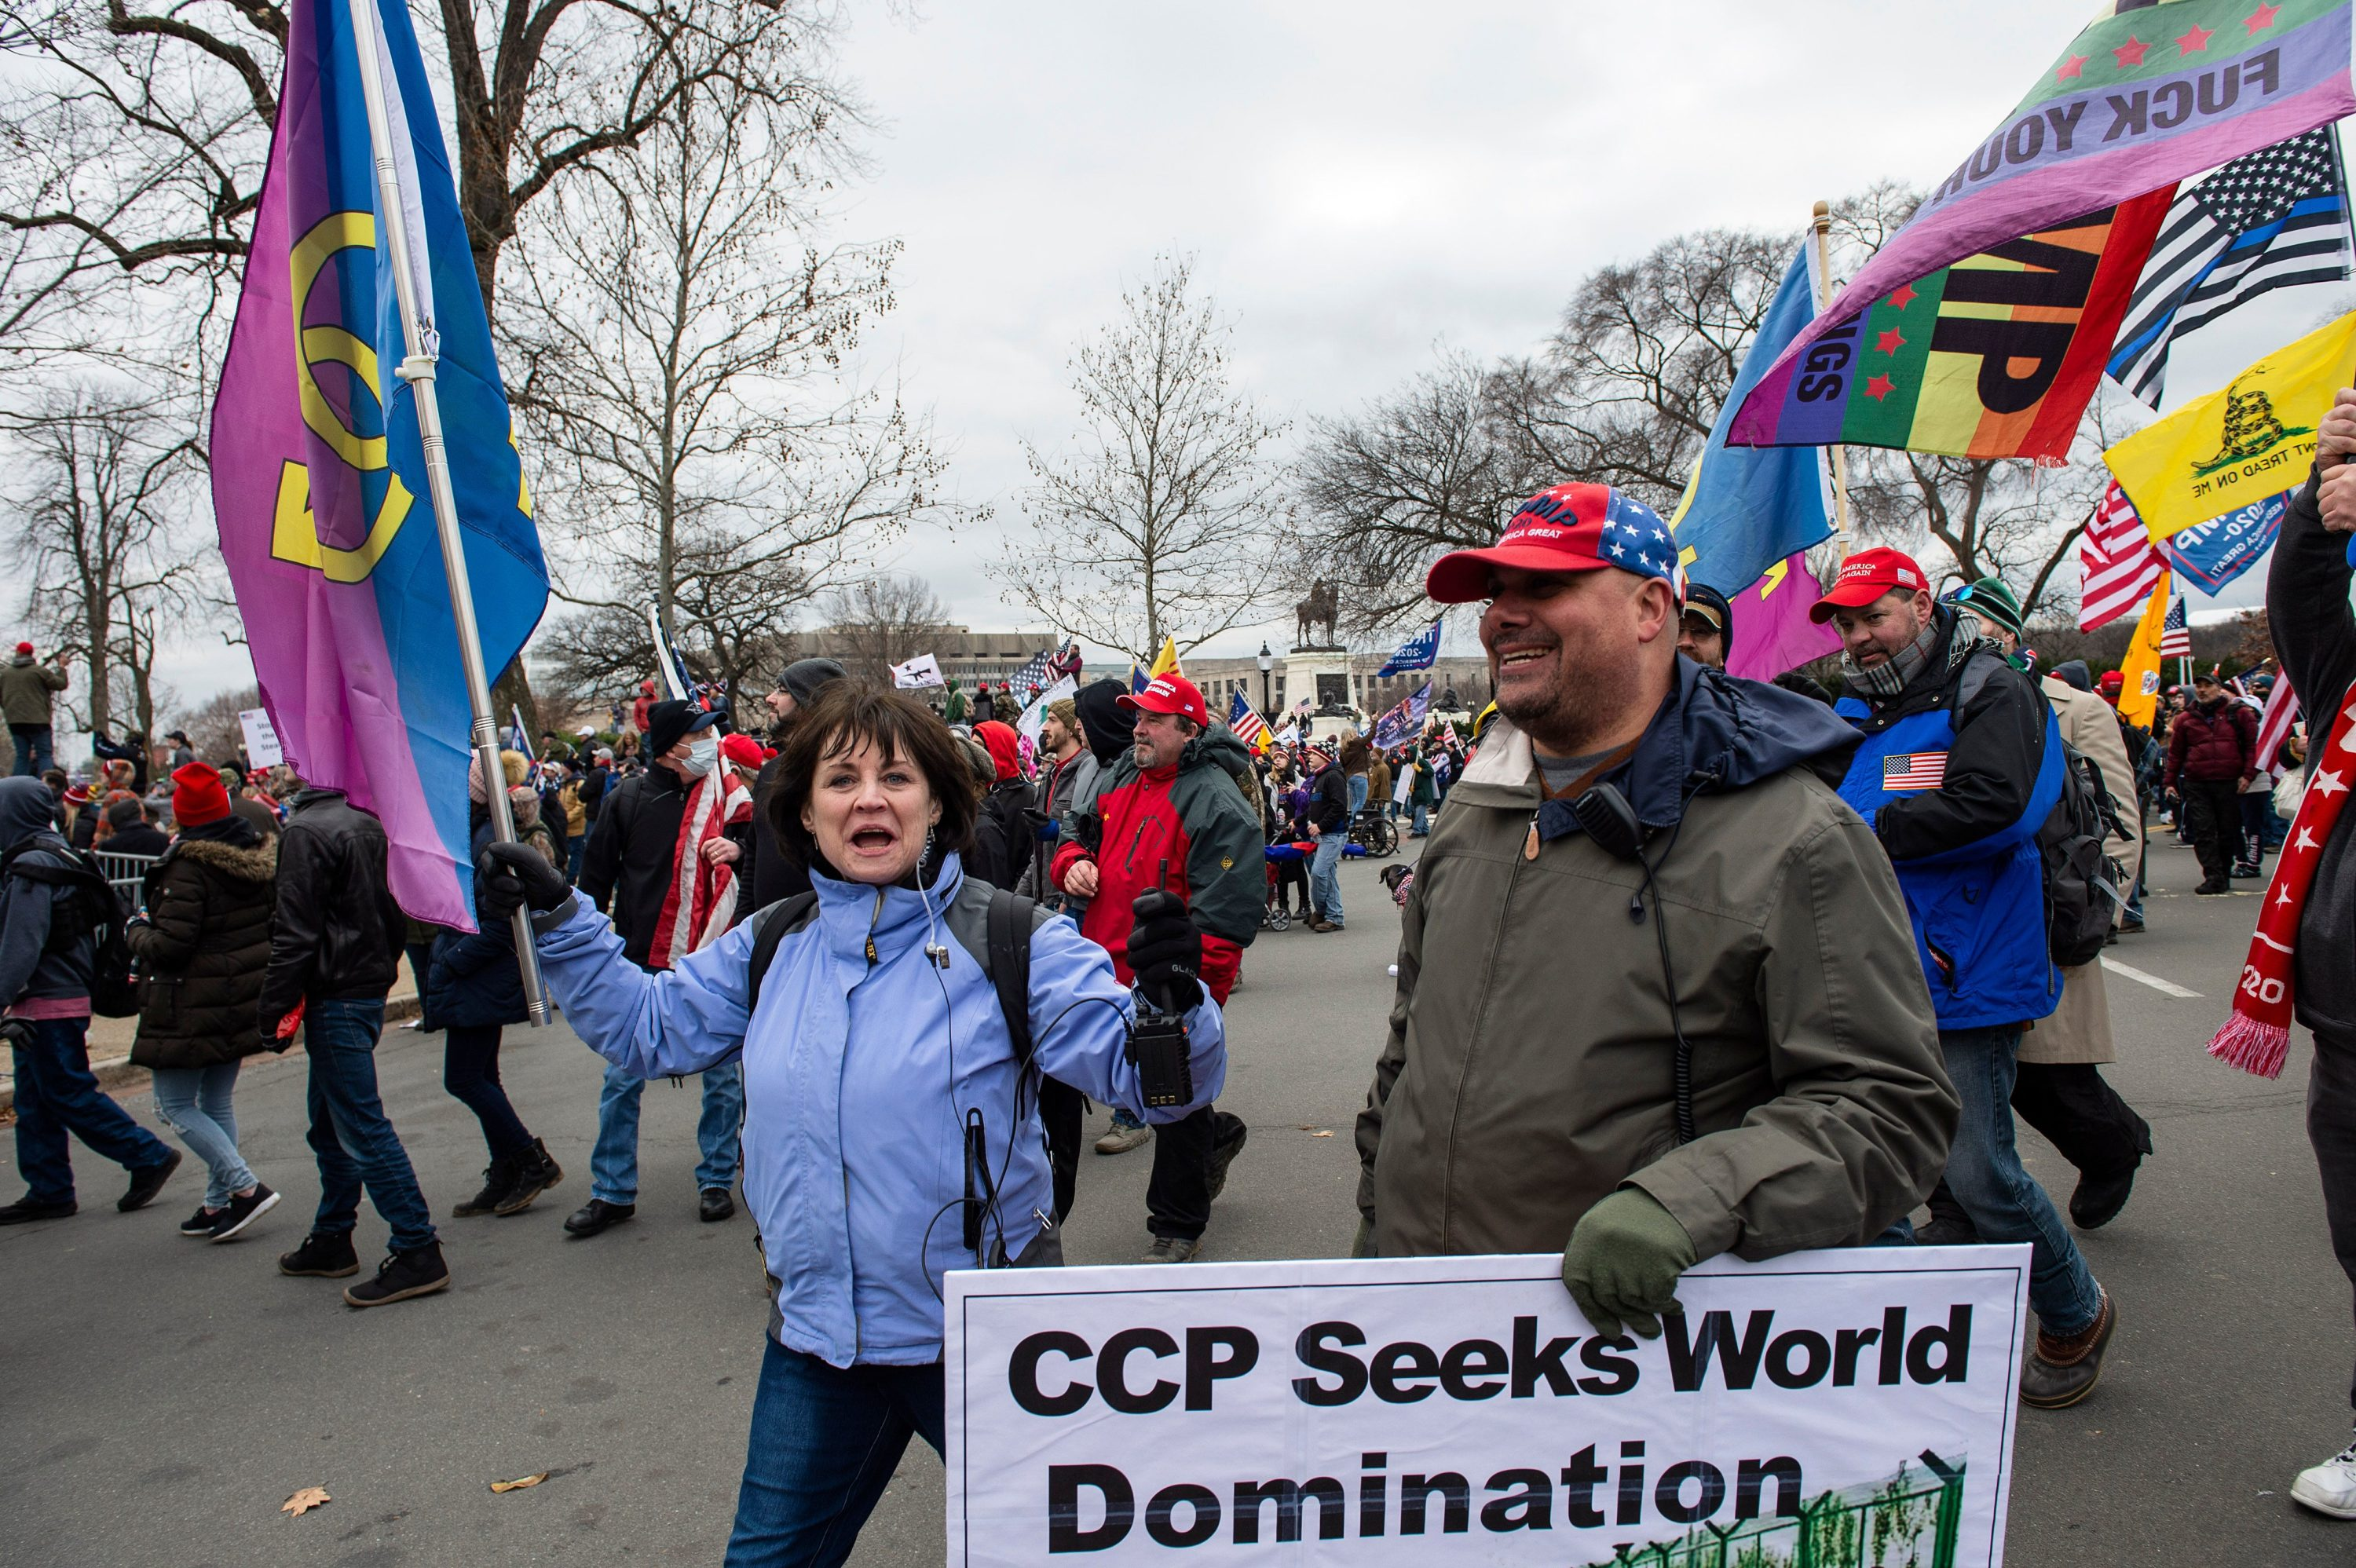 Natick Town Meeting member Suzanne Ianni and Mark Sahady march through the streets of Washington, D.C., before they allegedly stormed the Capitol building on Jan. 6. (Joseph Prezioso/AFP via Getty Images)